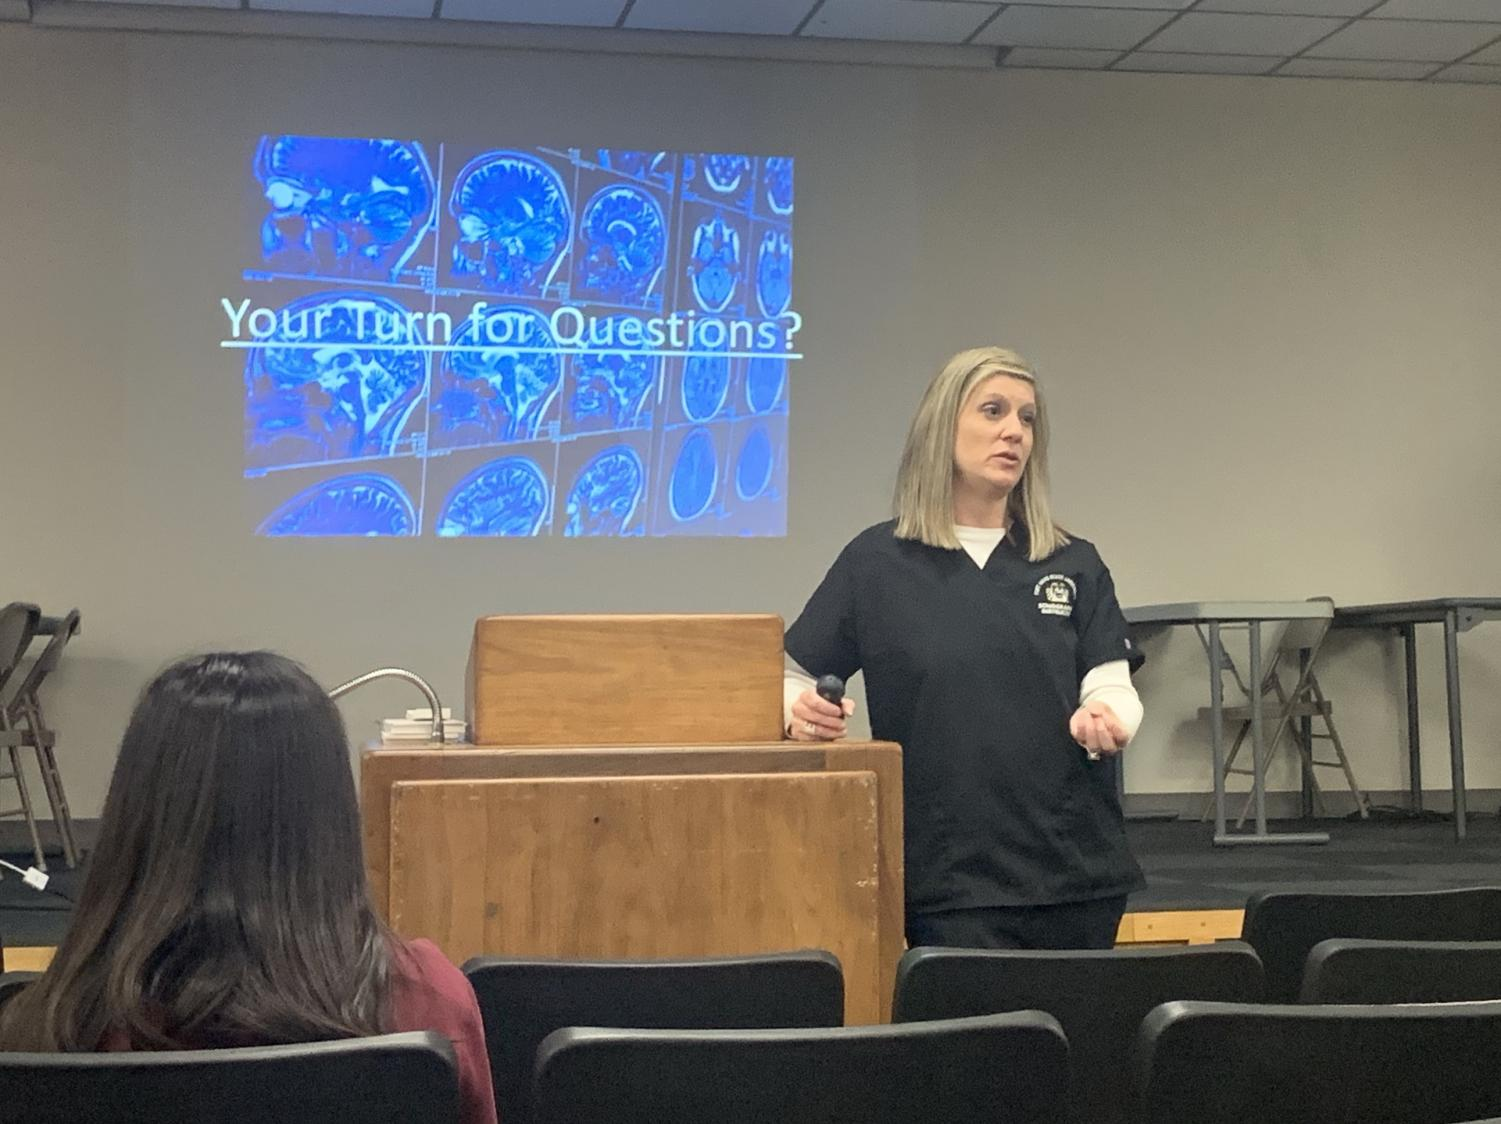 Throughout the presentation, Wagner had a PowerPoint covering all details about Medical Imaging, such as the career outlook, job details and helpful traits for the career.